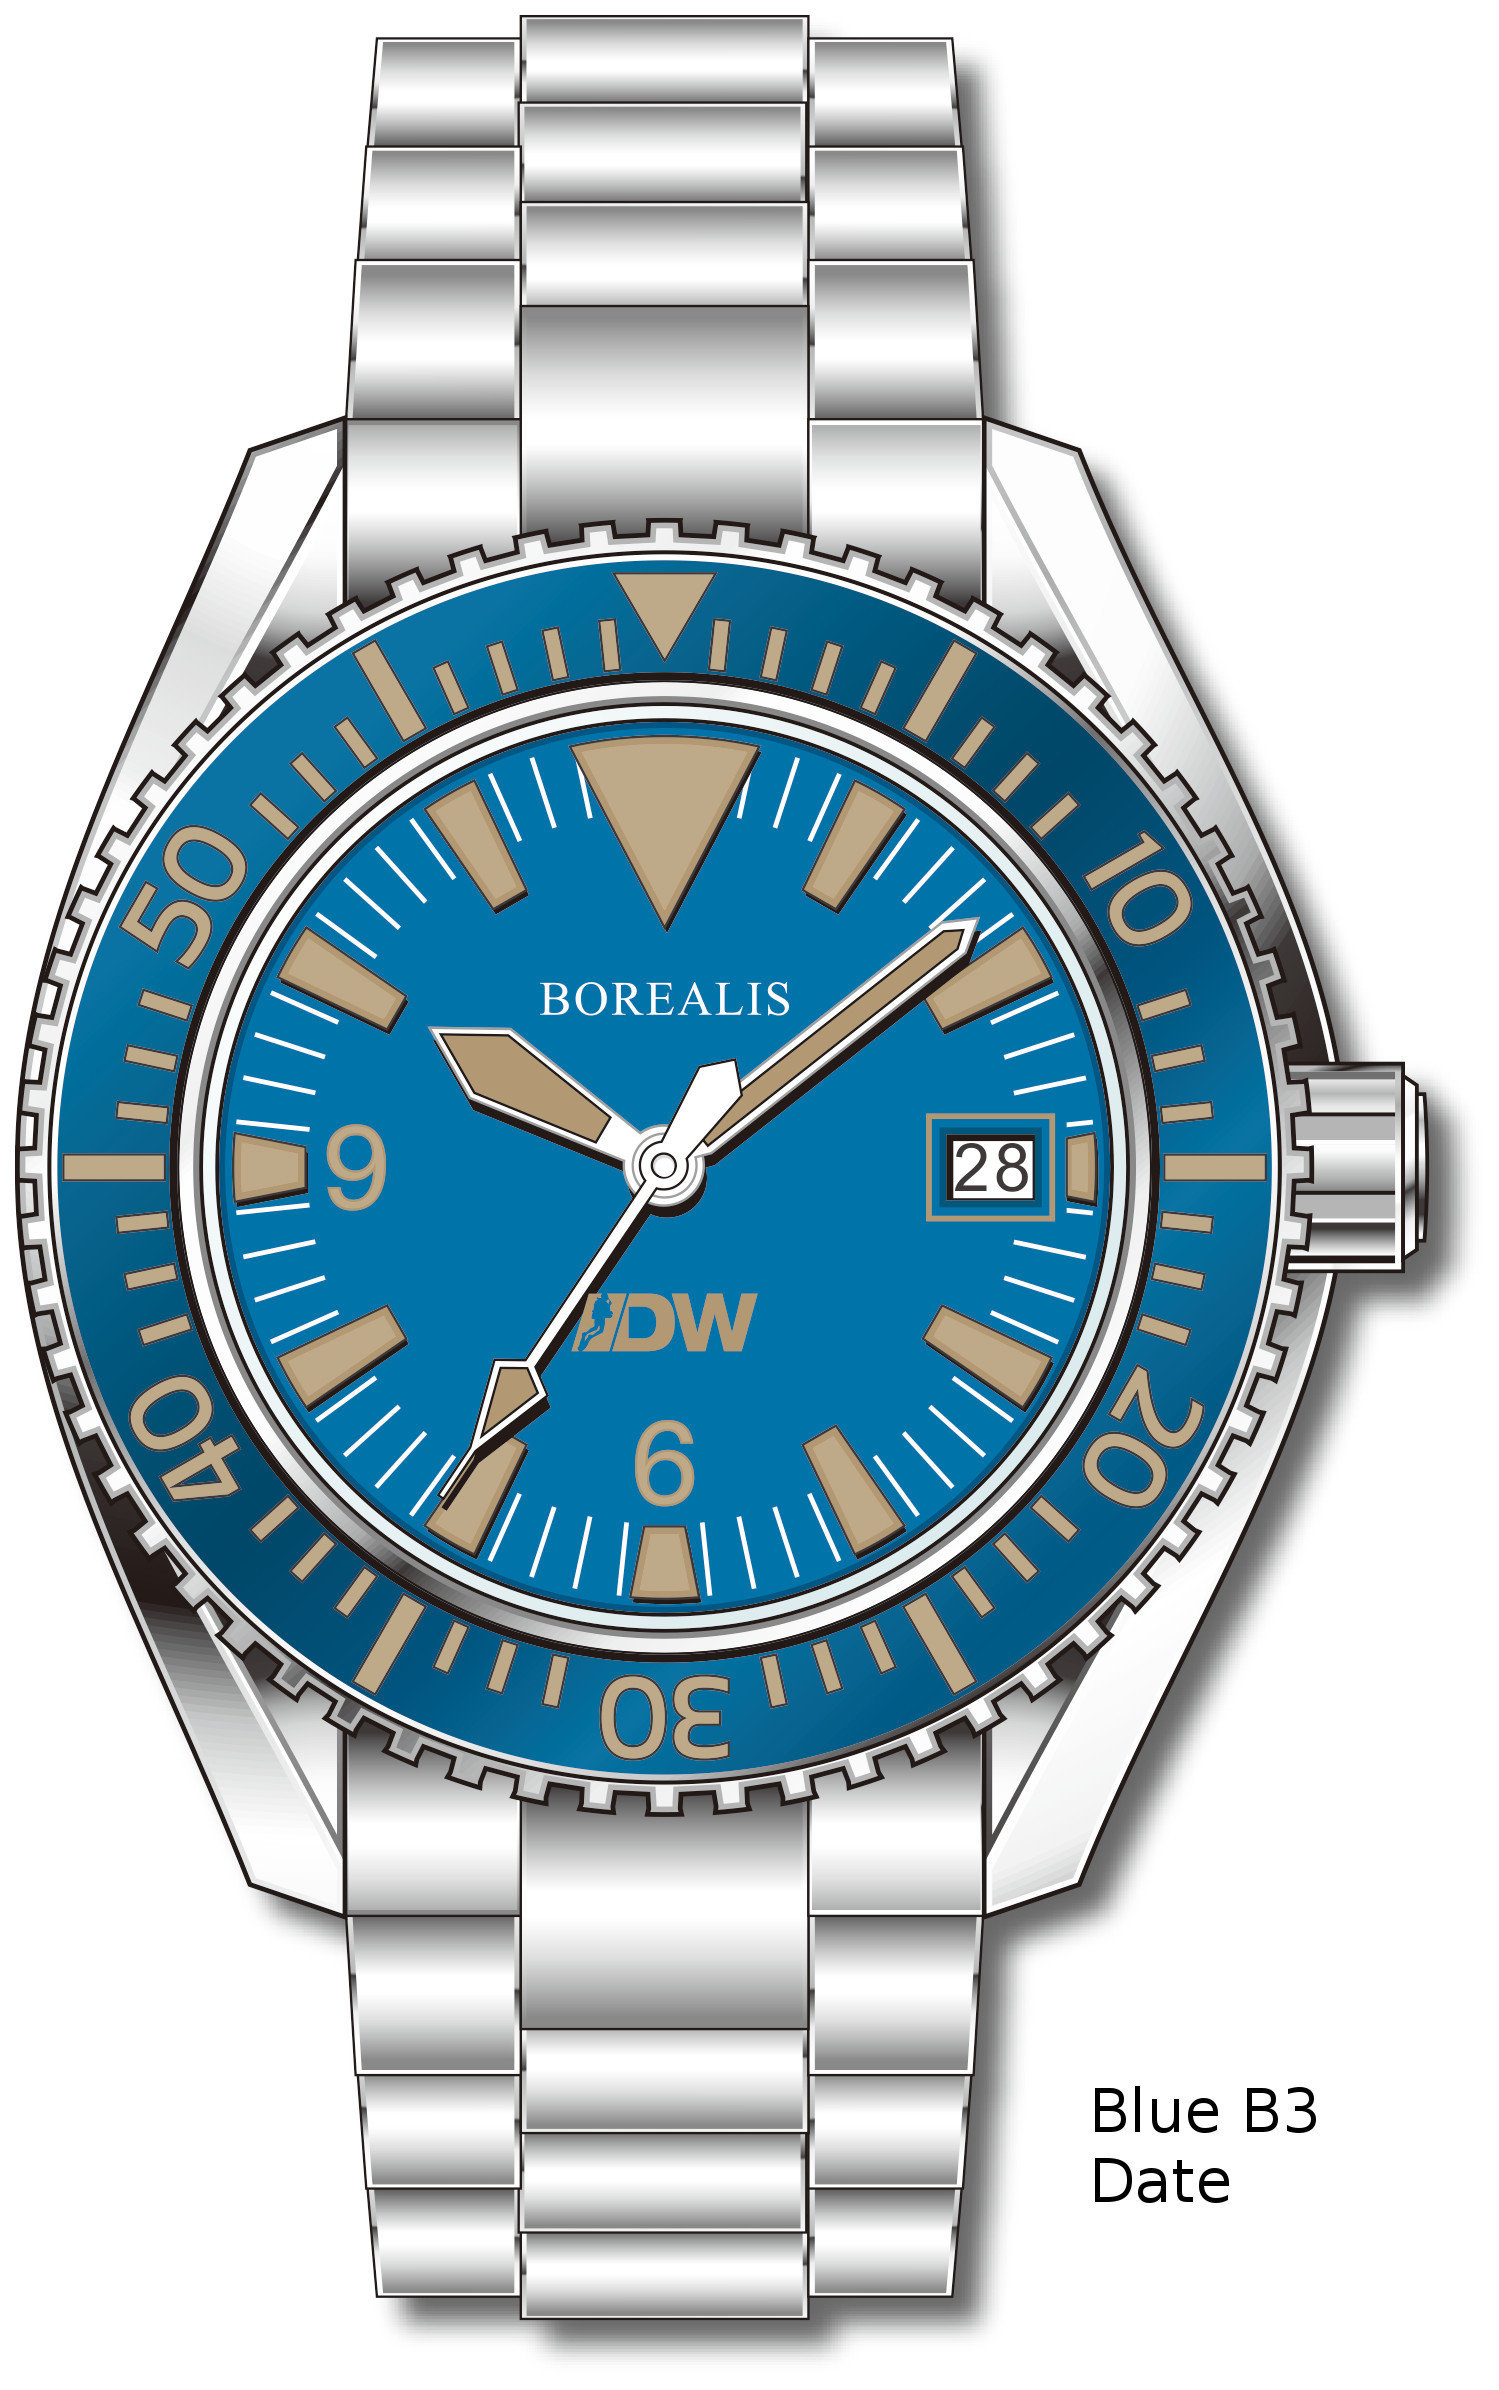 Pre-Order Borealis Estoril 300 for Diver's Watches Facebook Group Blue Dial Big Triangle Date Blue B3 Date EDWFBGBLUEB3DT